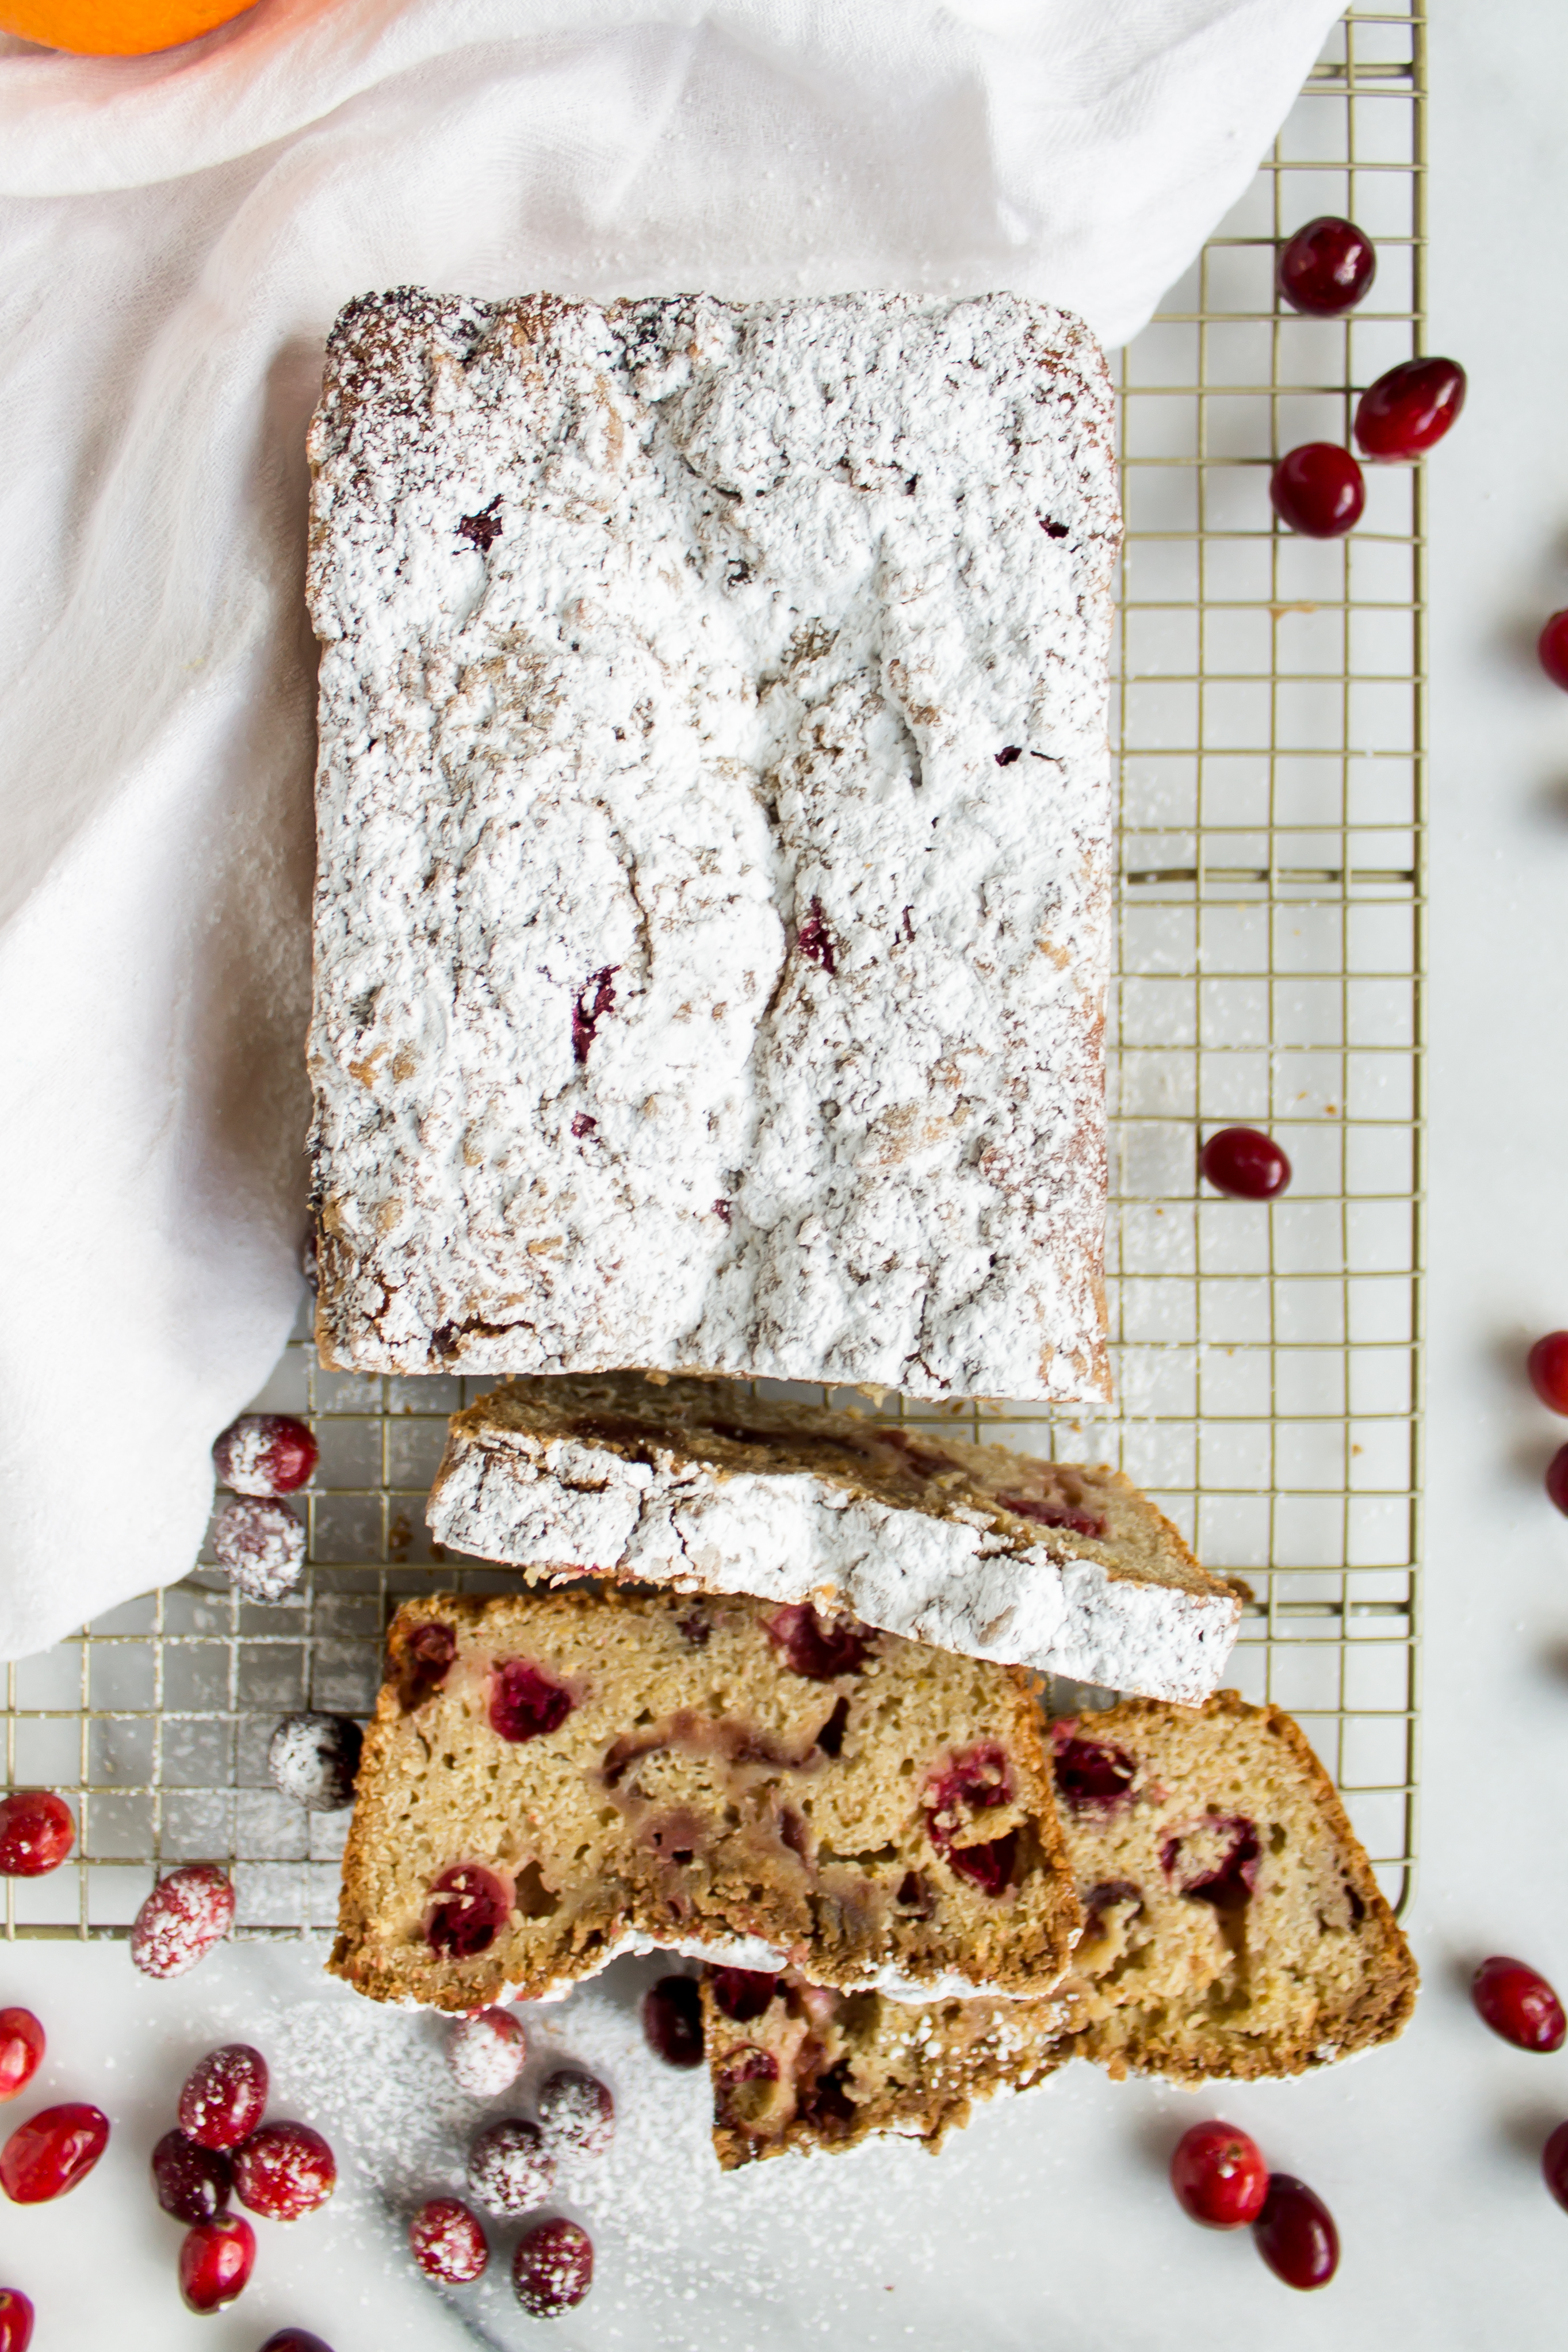 Cranberry quick bread is the perfect double duty bread! Make it for breakfast on Thanksgiving morning or use your leftover cranberry sauce to make a loaf for post-Thanksgiving enjoyment. | www.passthecookies.com